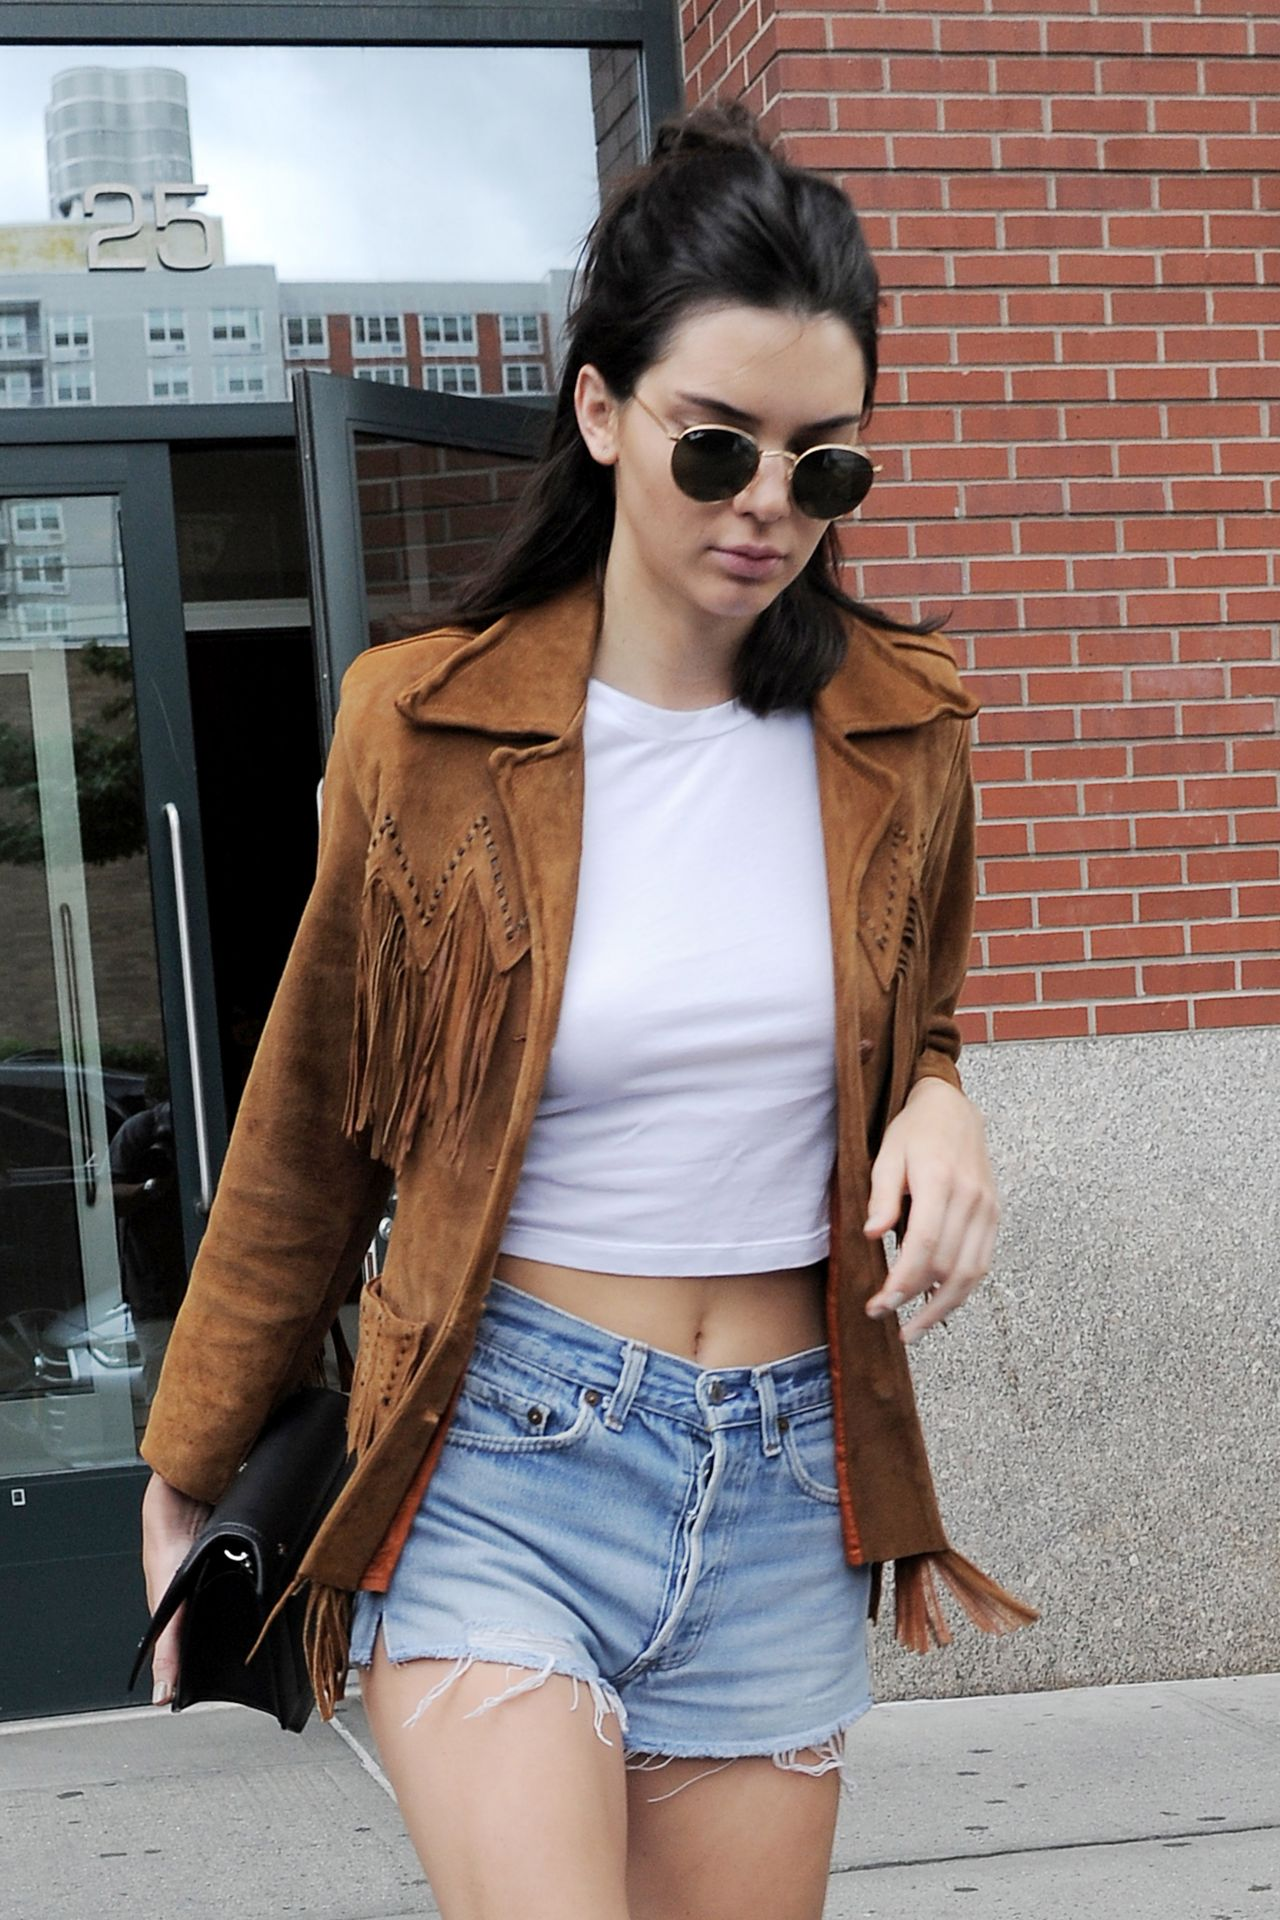 Kendall Jenner In Jeans Shorts New York City 07 10 2016